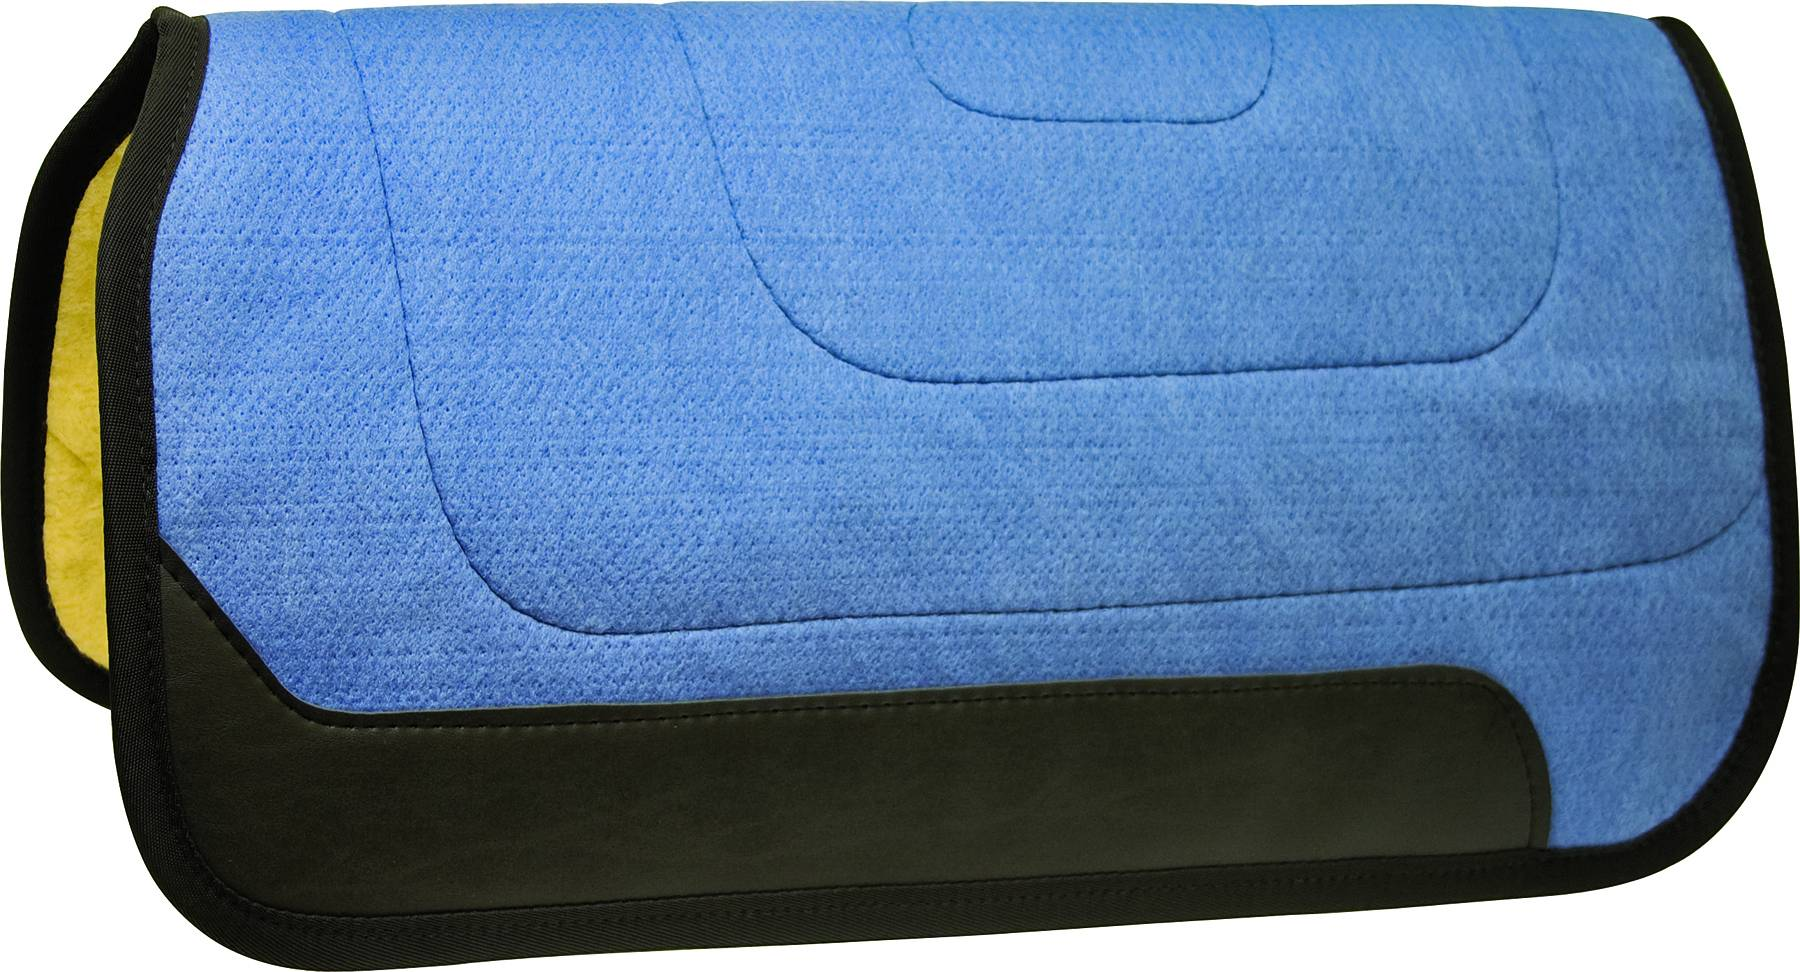 Abetta Felt Pad with Fleece